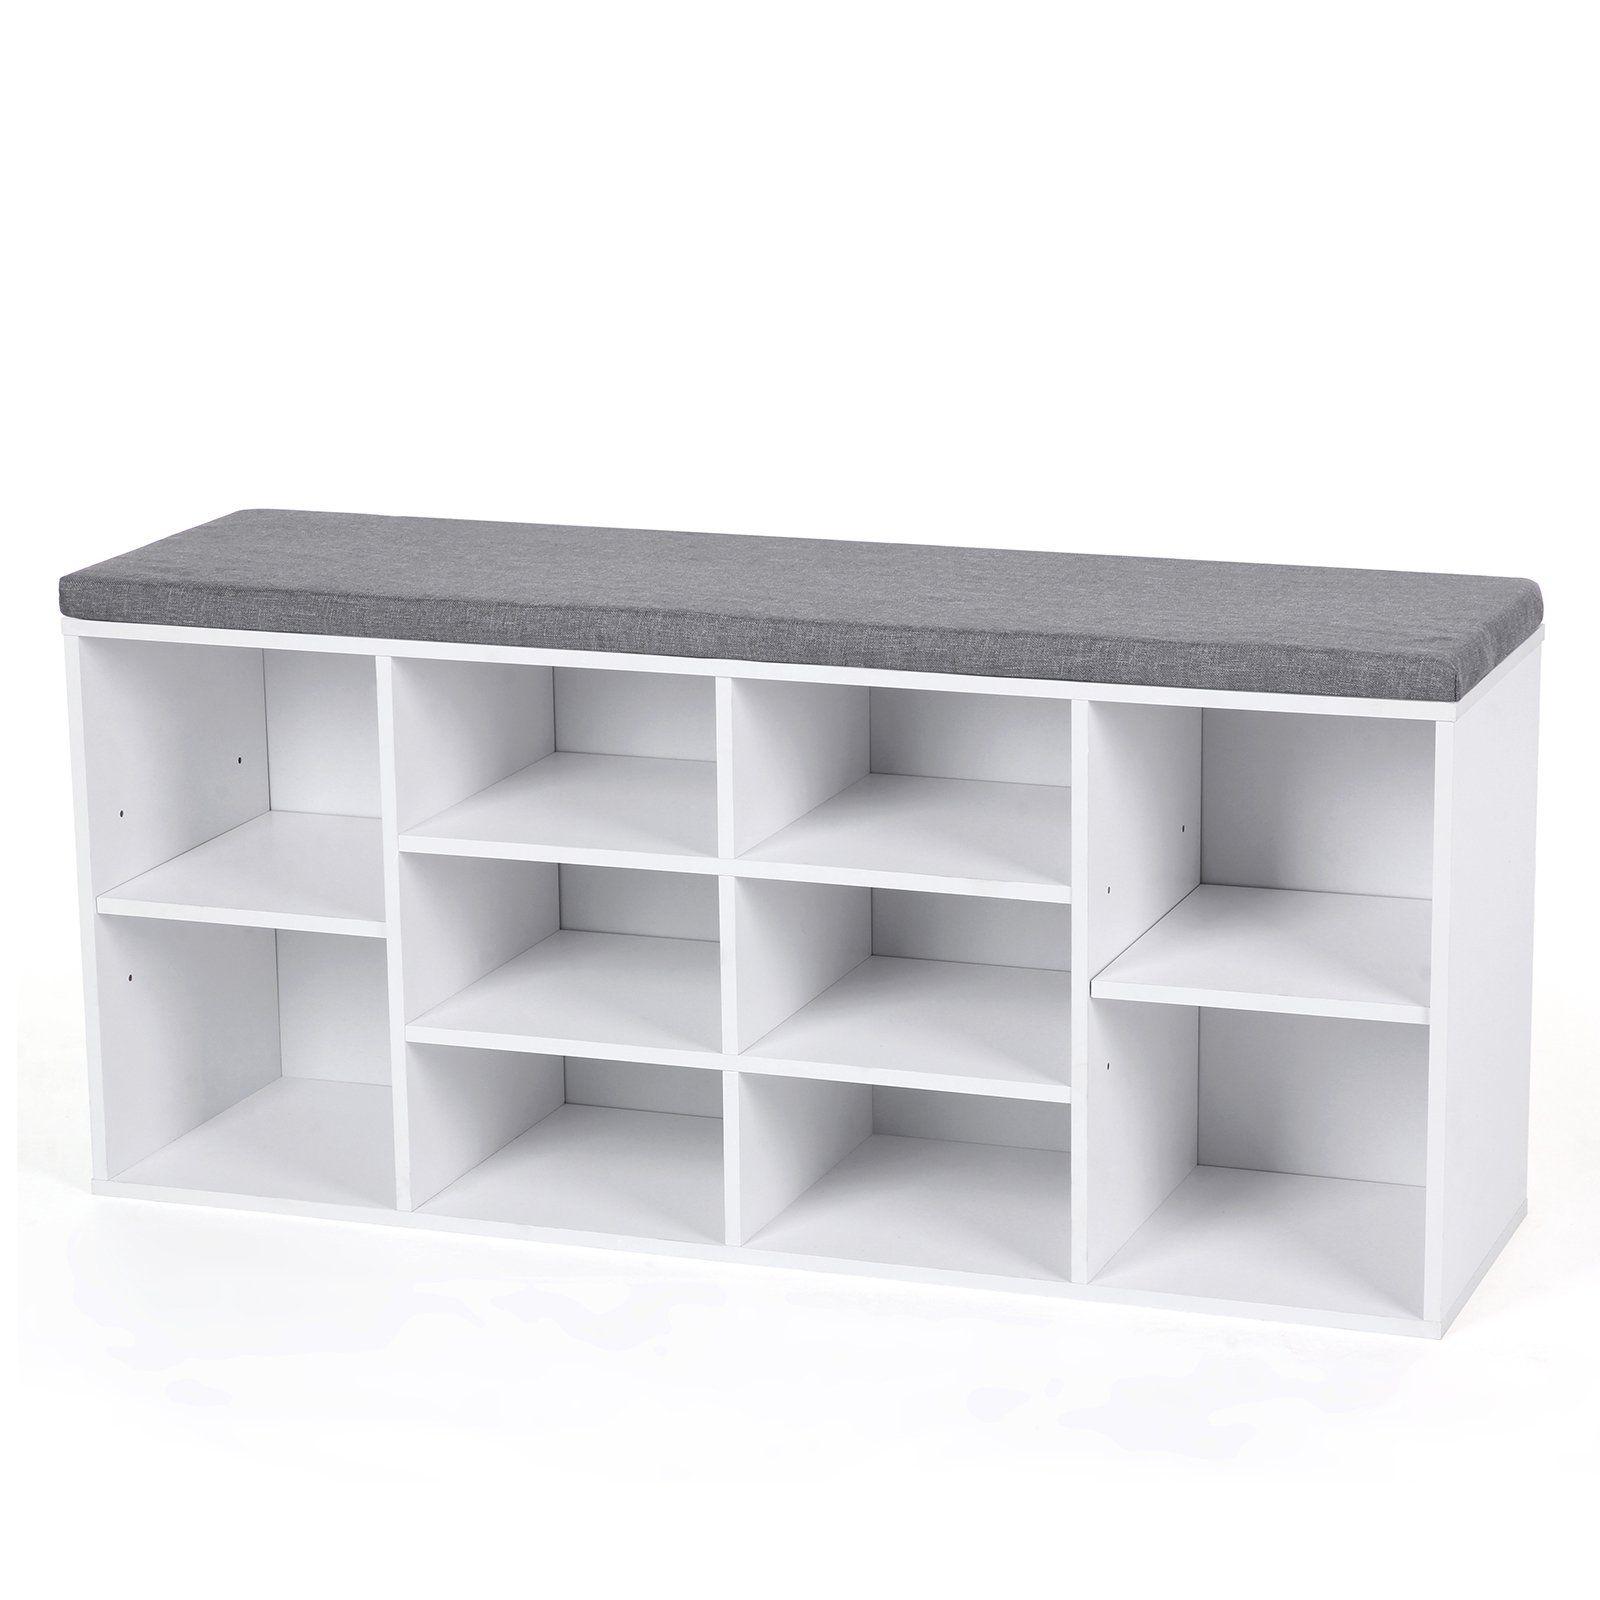 VASAGLE Cubbie Shoe Cabinet Storage Bench with Cushion, Adjustable Shelves, Holds up to 440lb, White ULHS10WT by VASAGLE